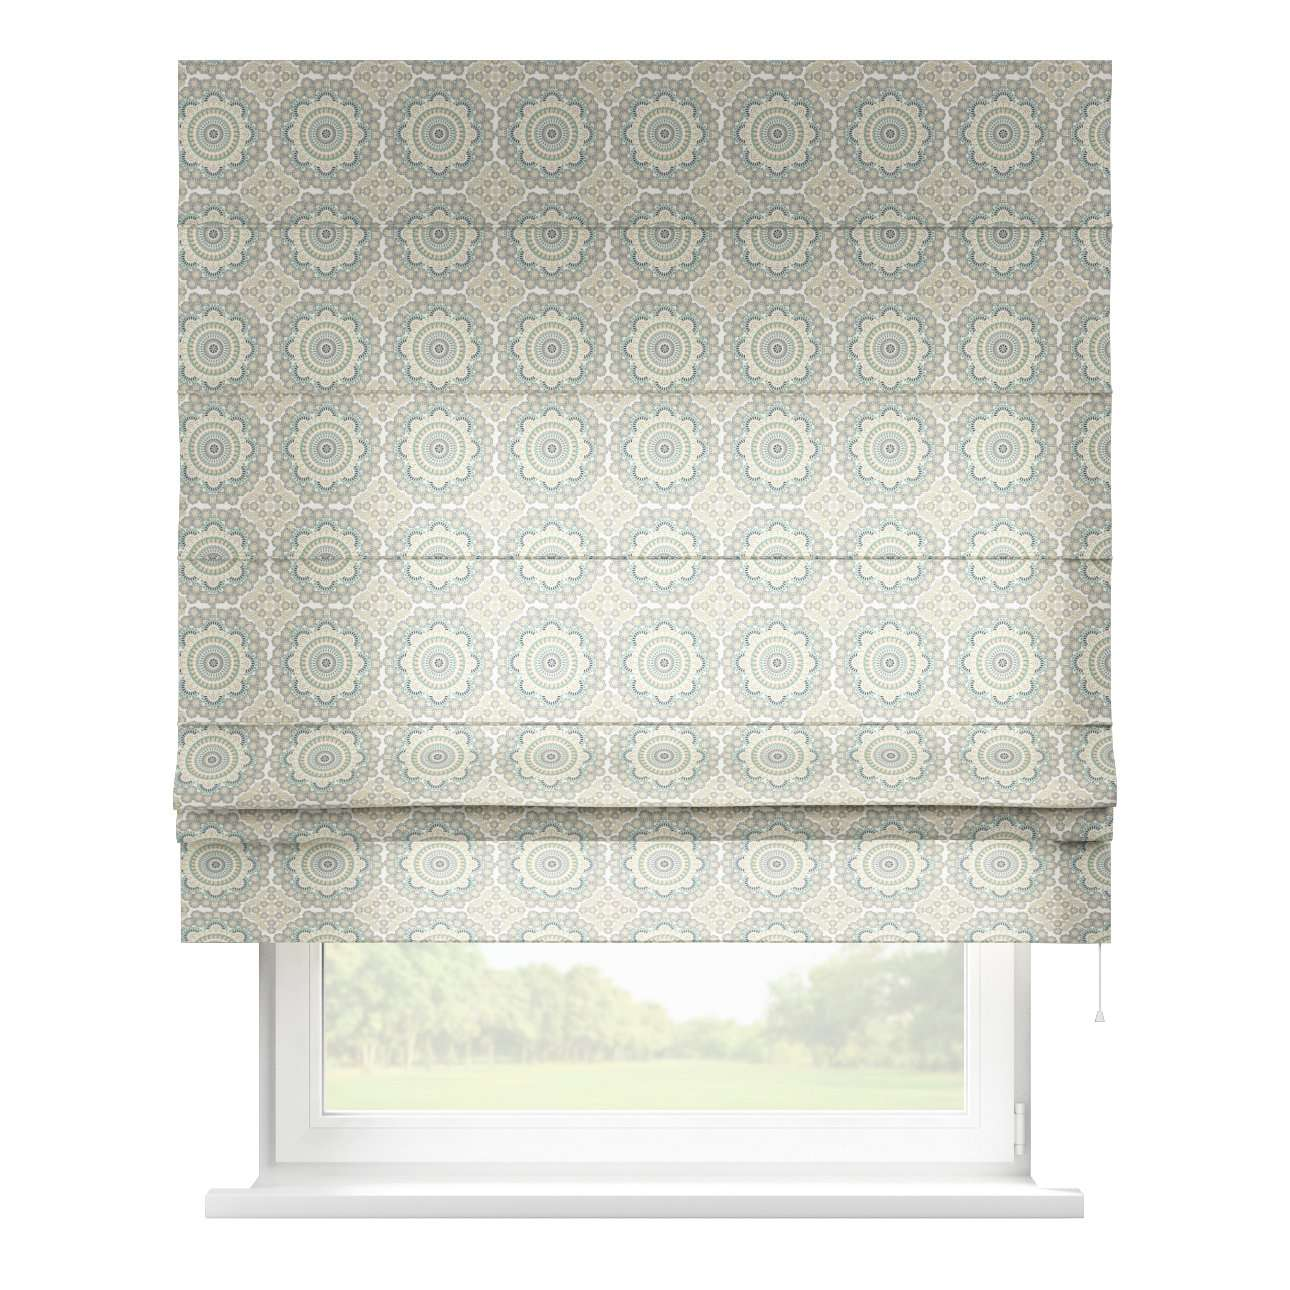 Padva roman blind  80 x 170 cm (31.5 x 67 inch) in collection Comic Book & Geo Prints, fabric: 137-84